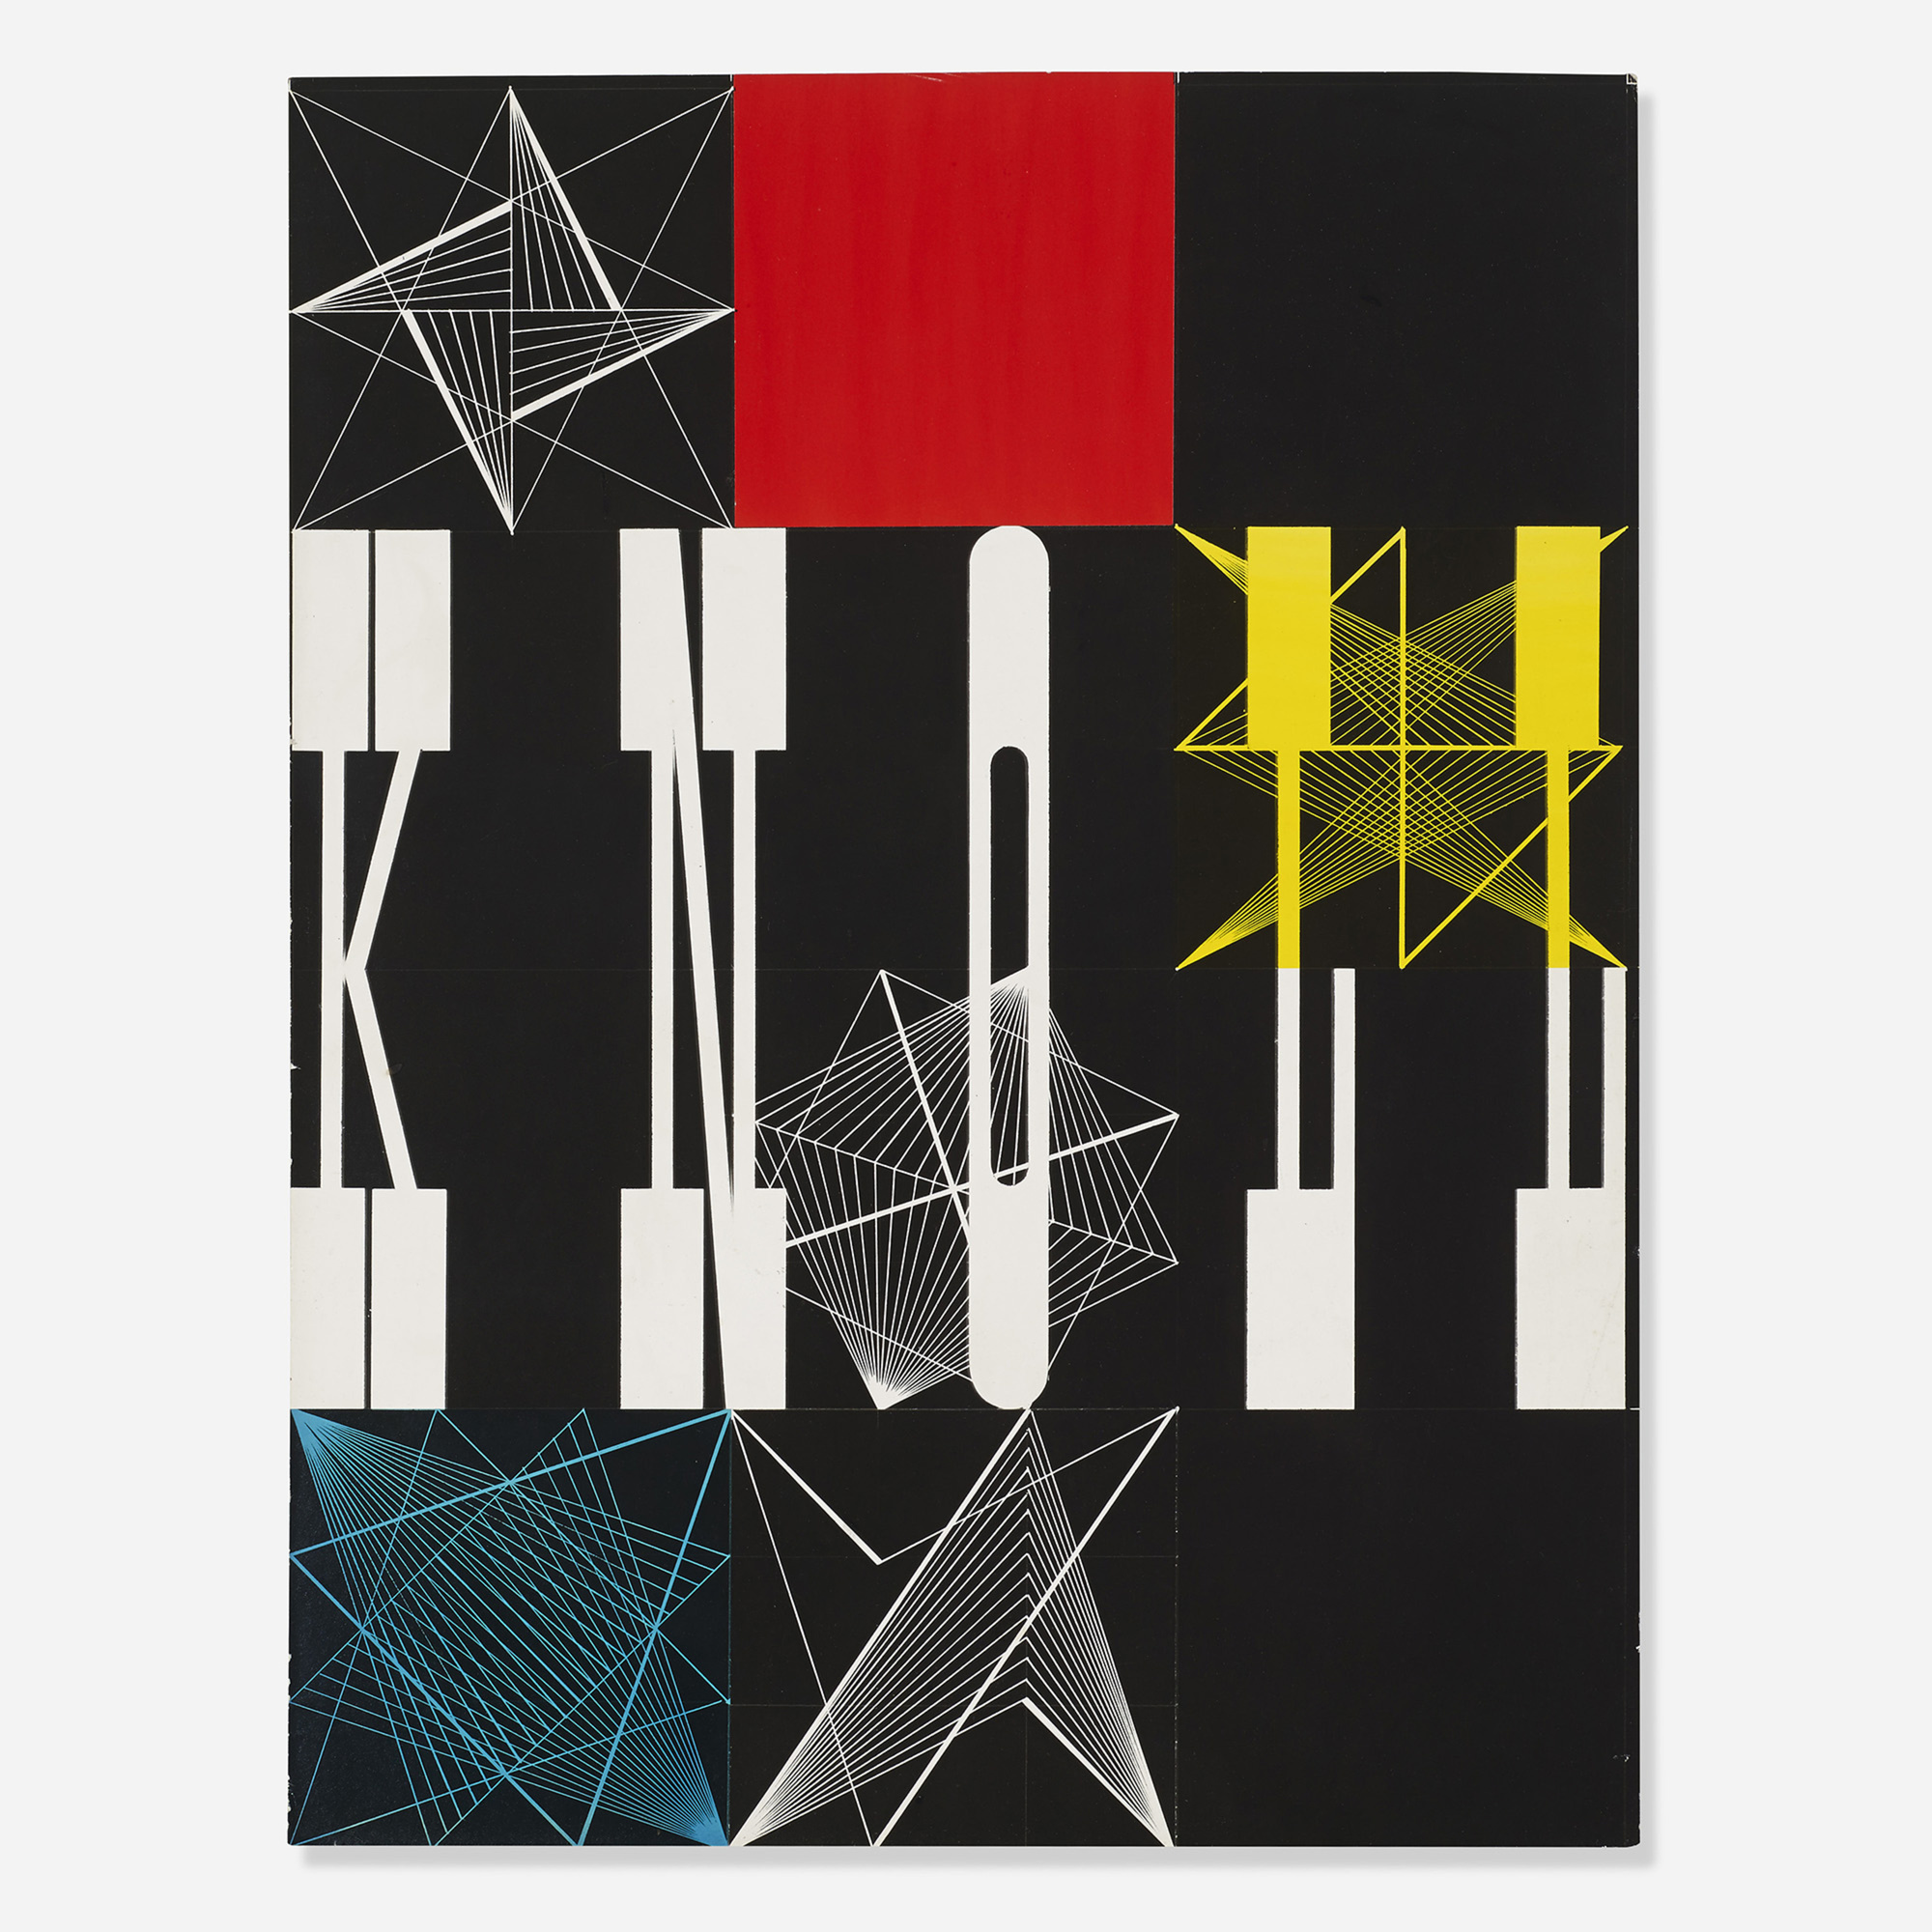 545: Herbert Matter / Untitled (Knoll collage) (1 of 2)